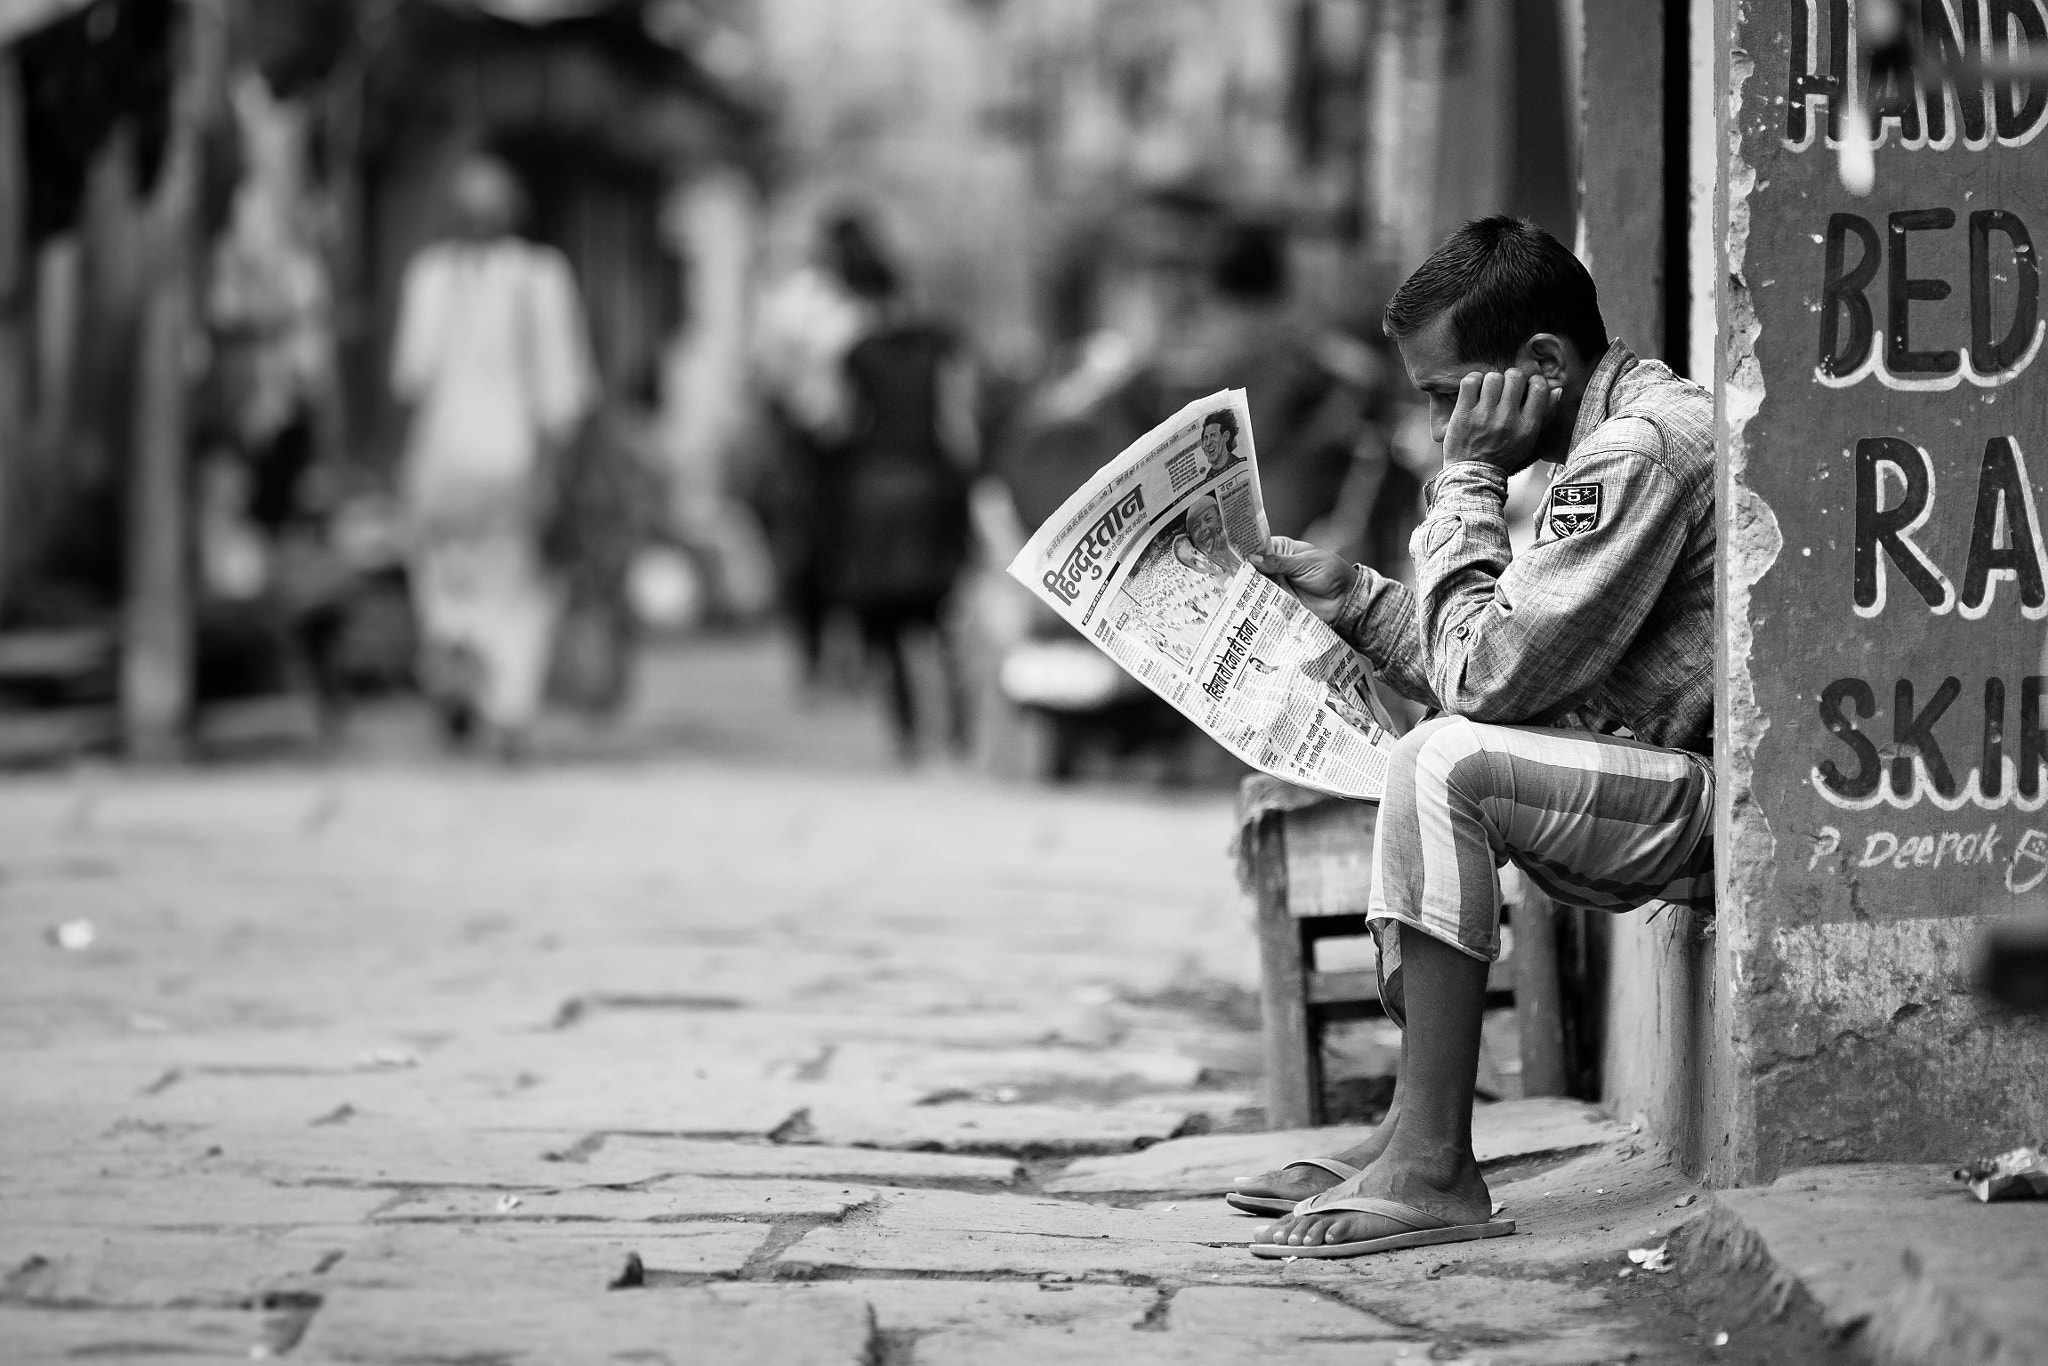 Photograph Daily feed by Roke Gezuraga on 500px